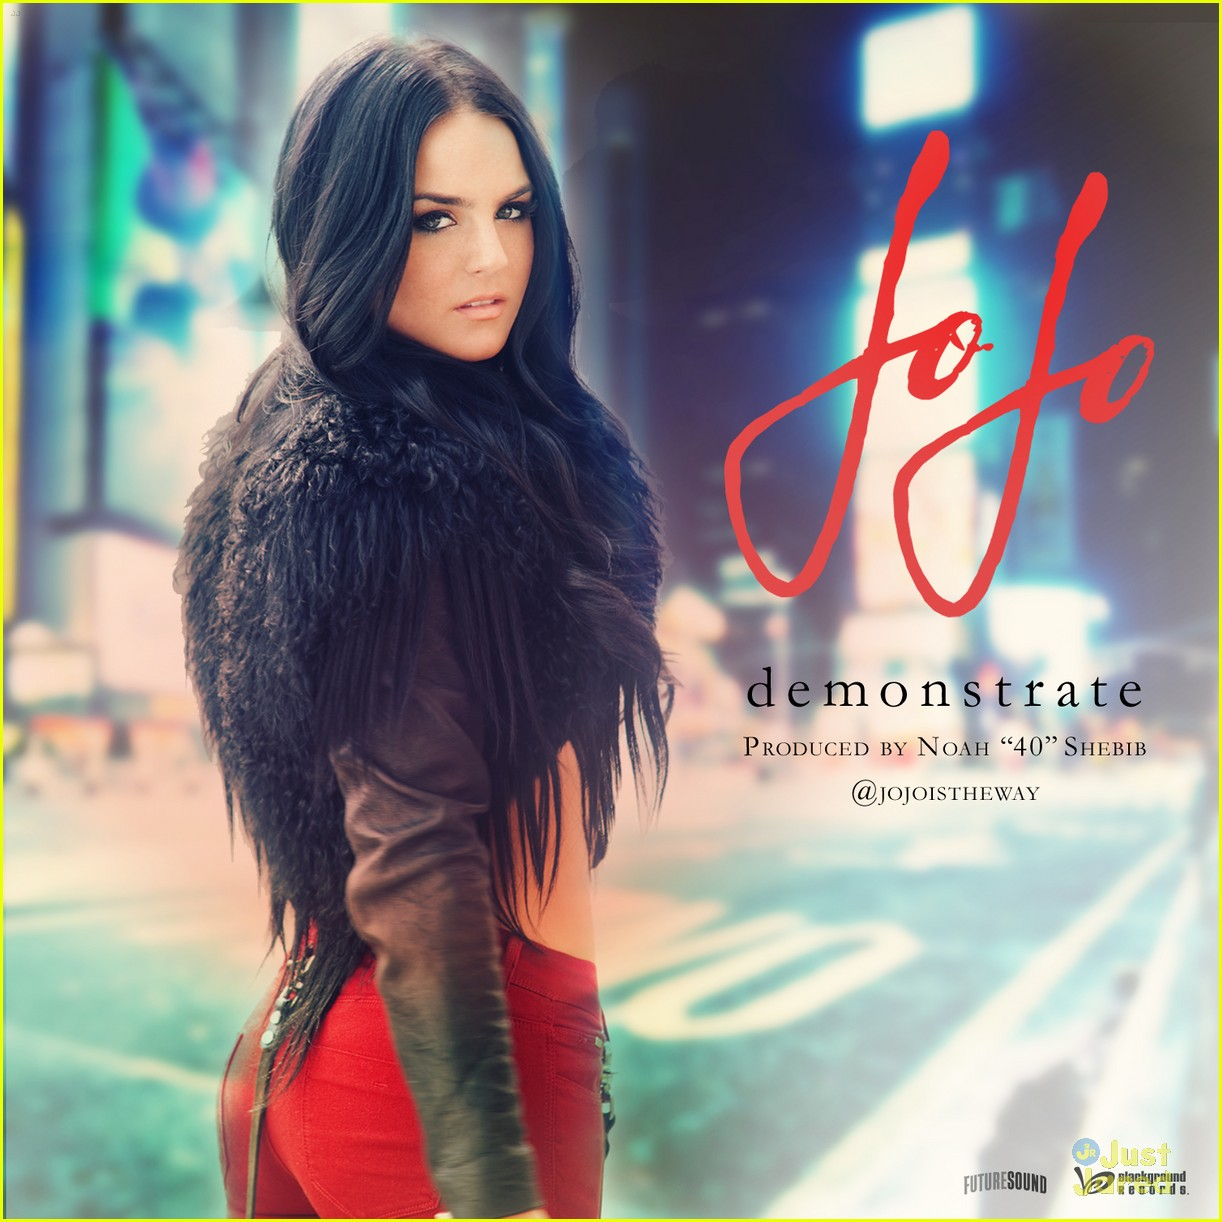 jojo demonstrate single cover 01